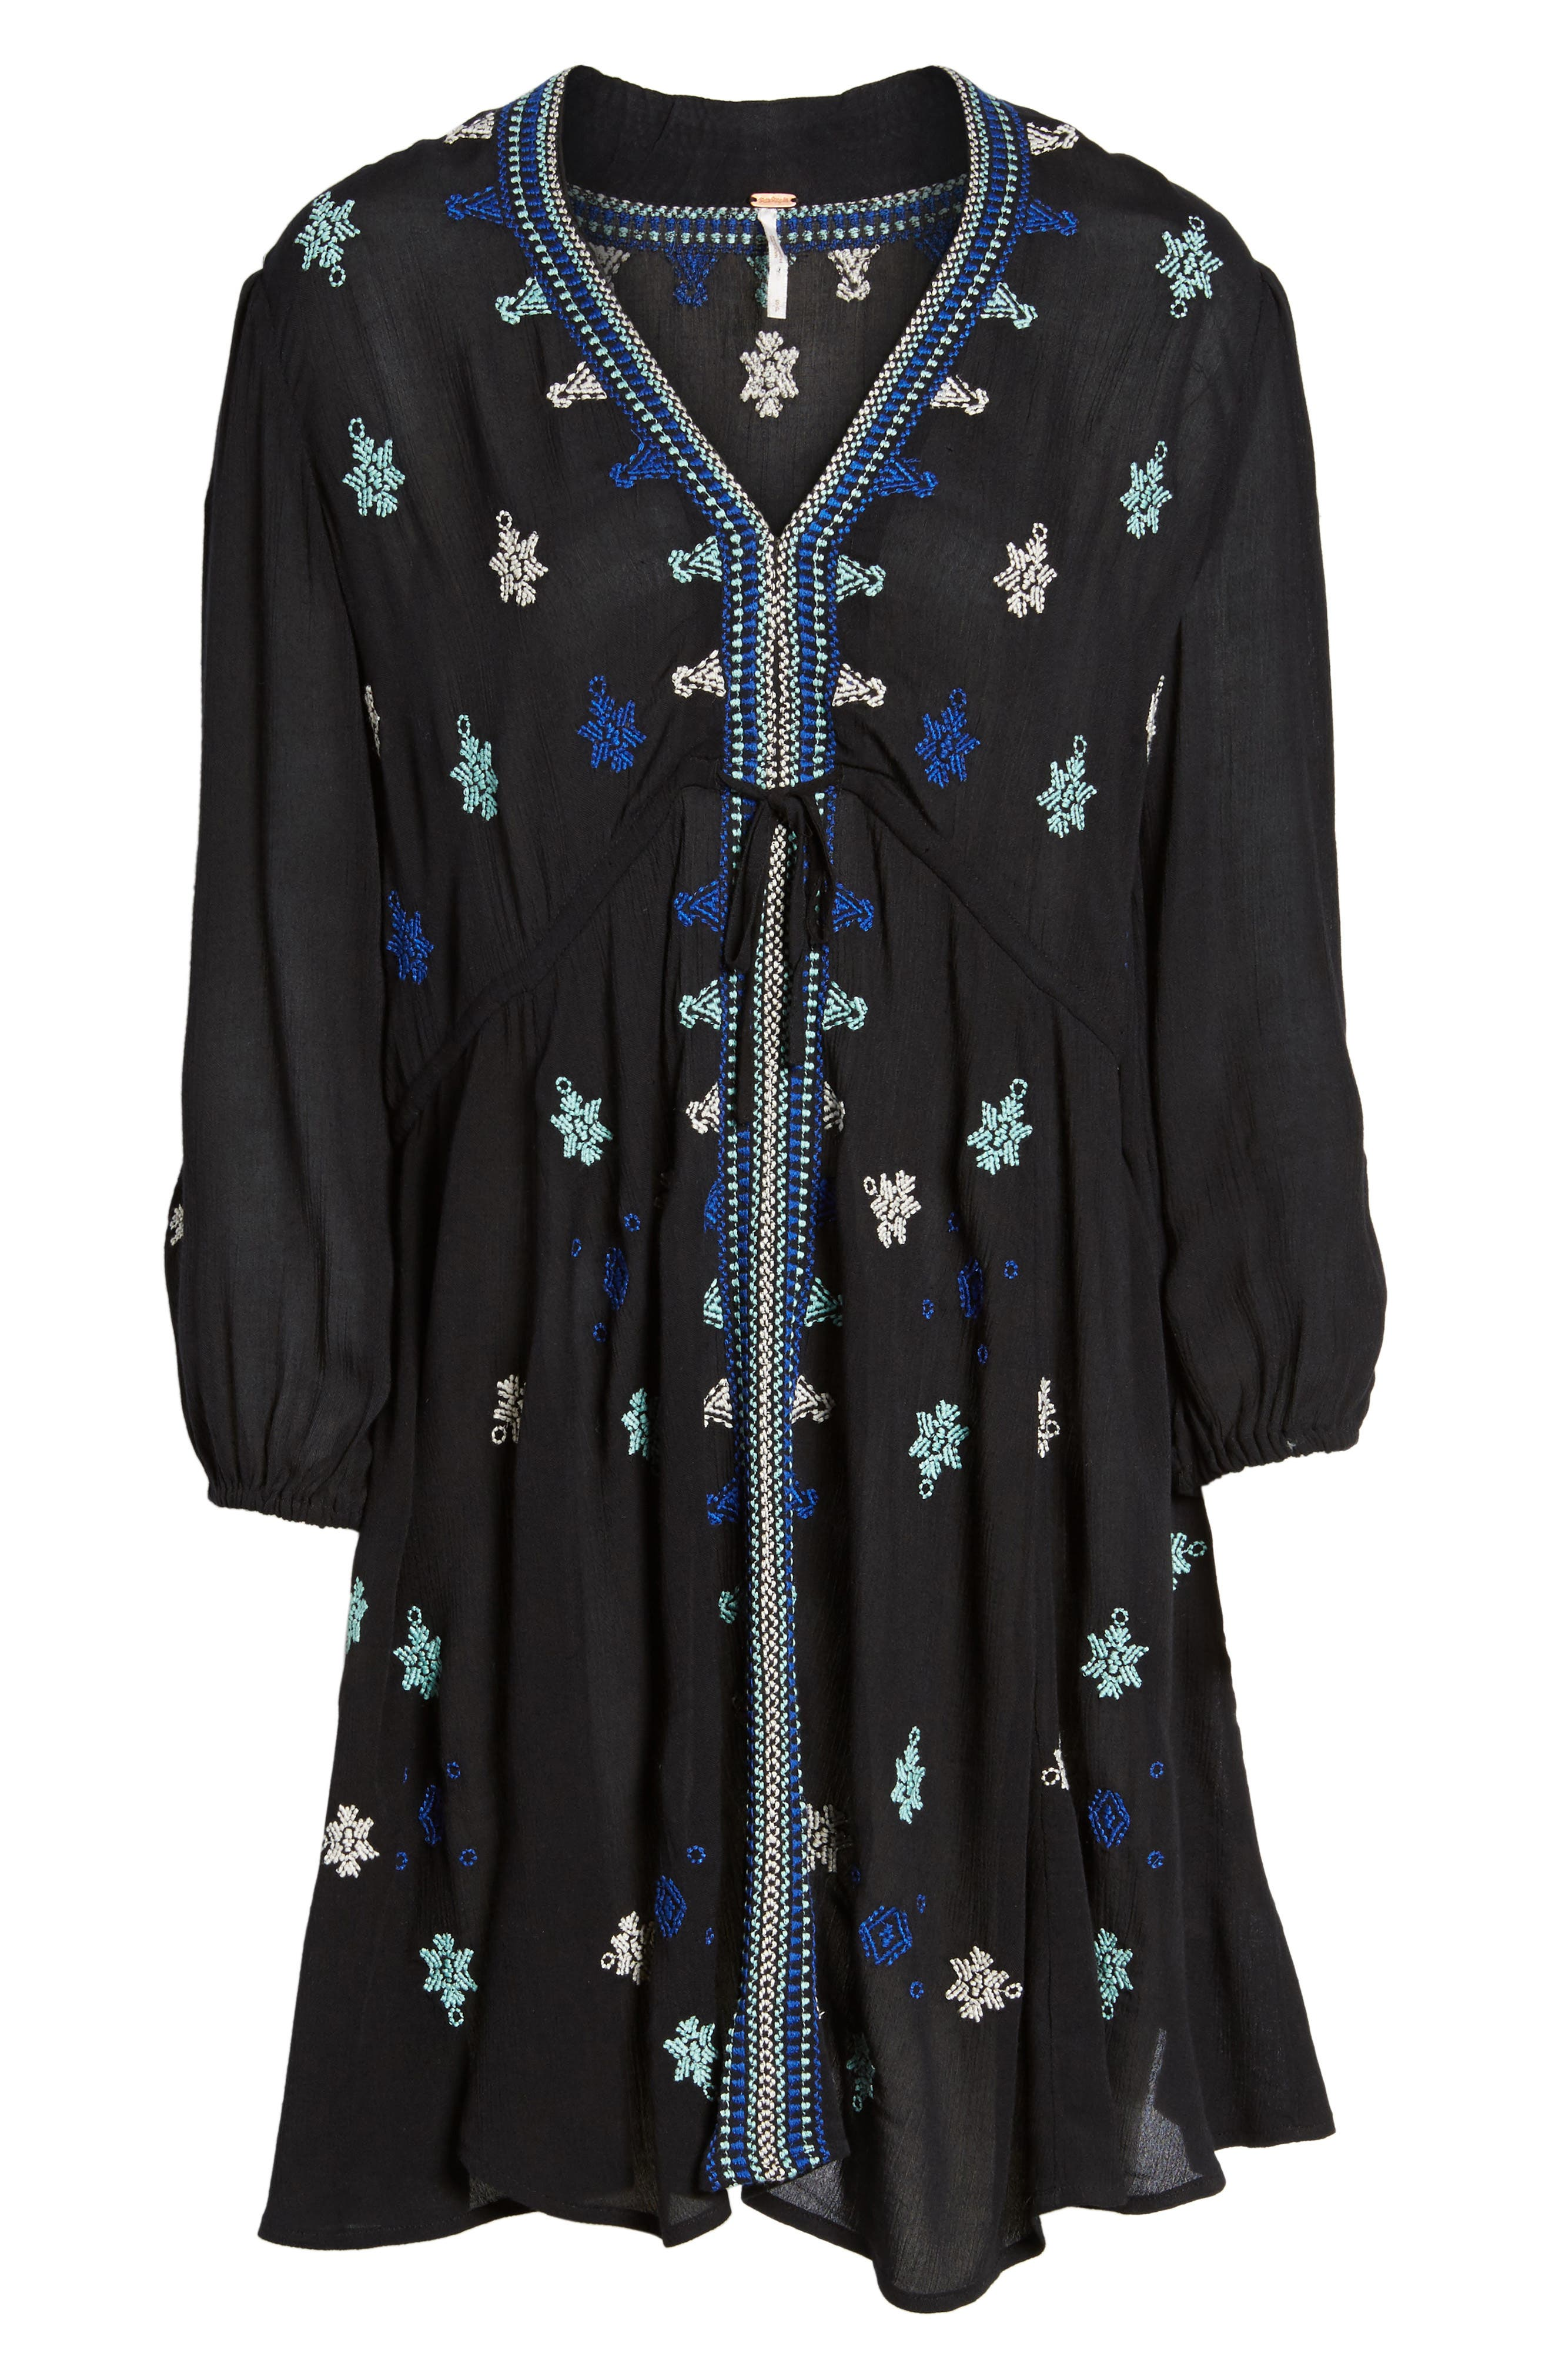 'Star Gazer' Embroidered Tunic Dress,                             Alternate thumbnail 2, color,                             001